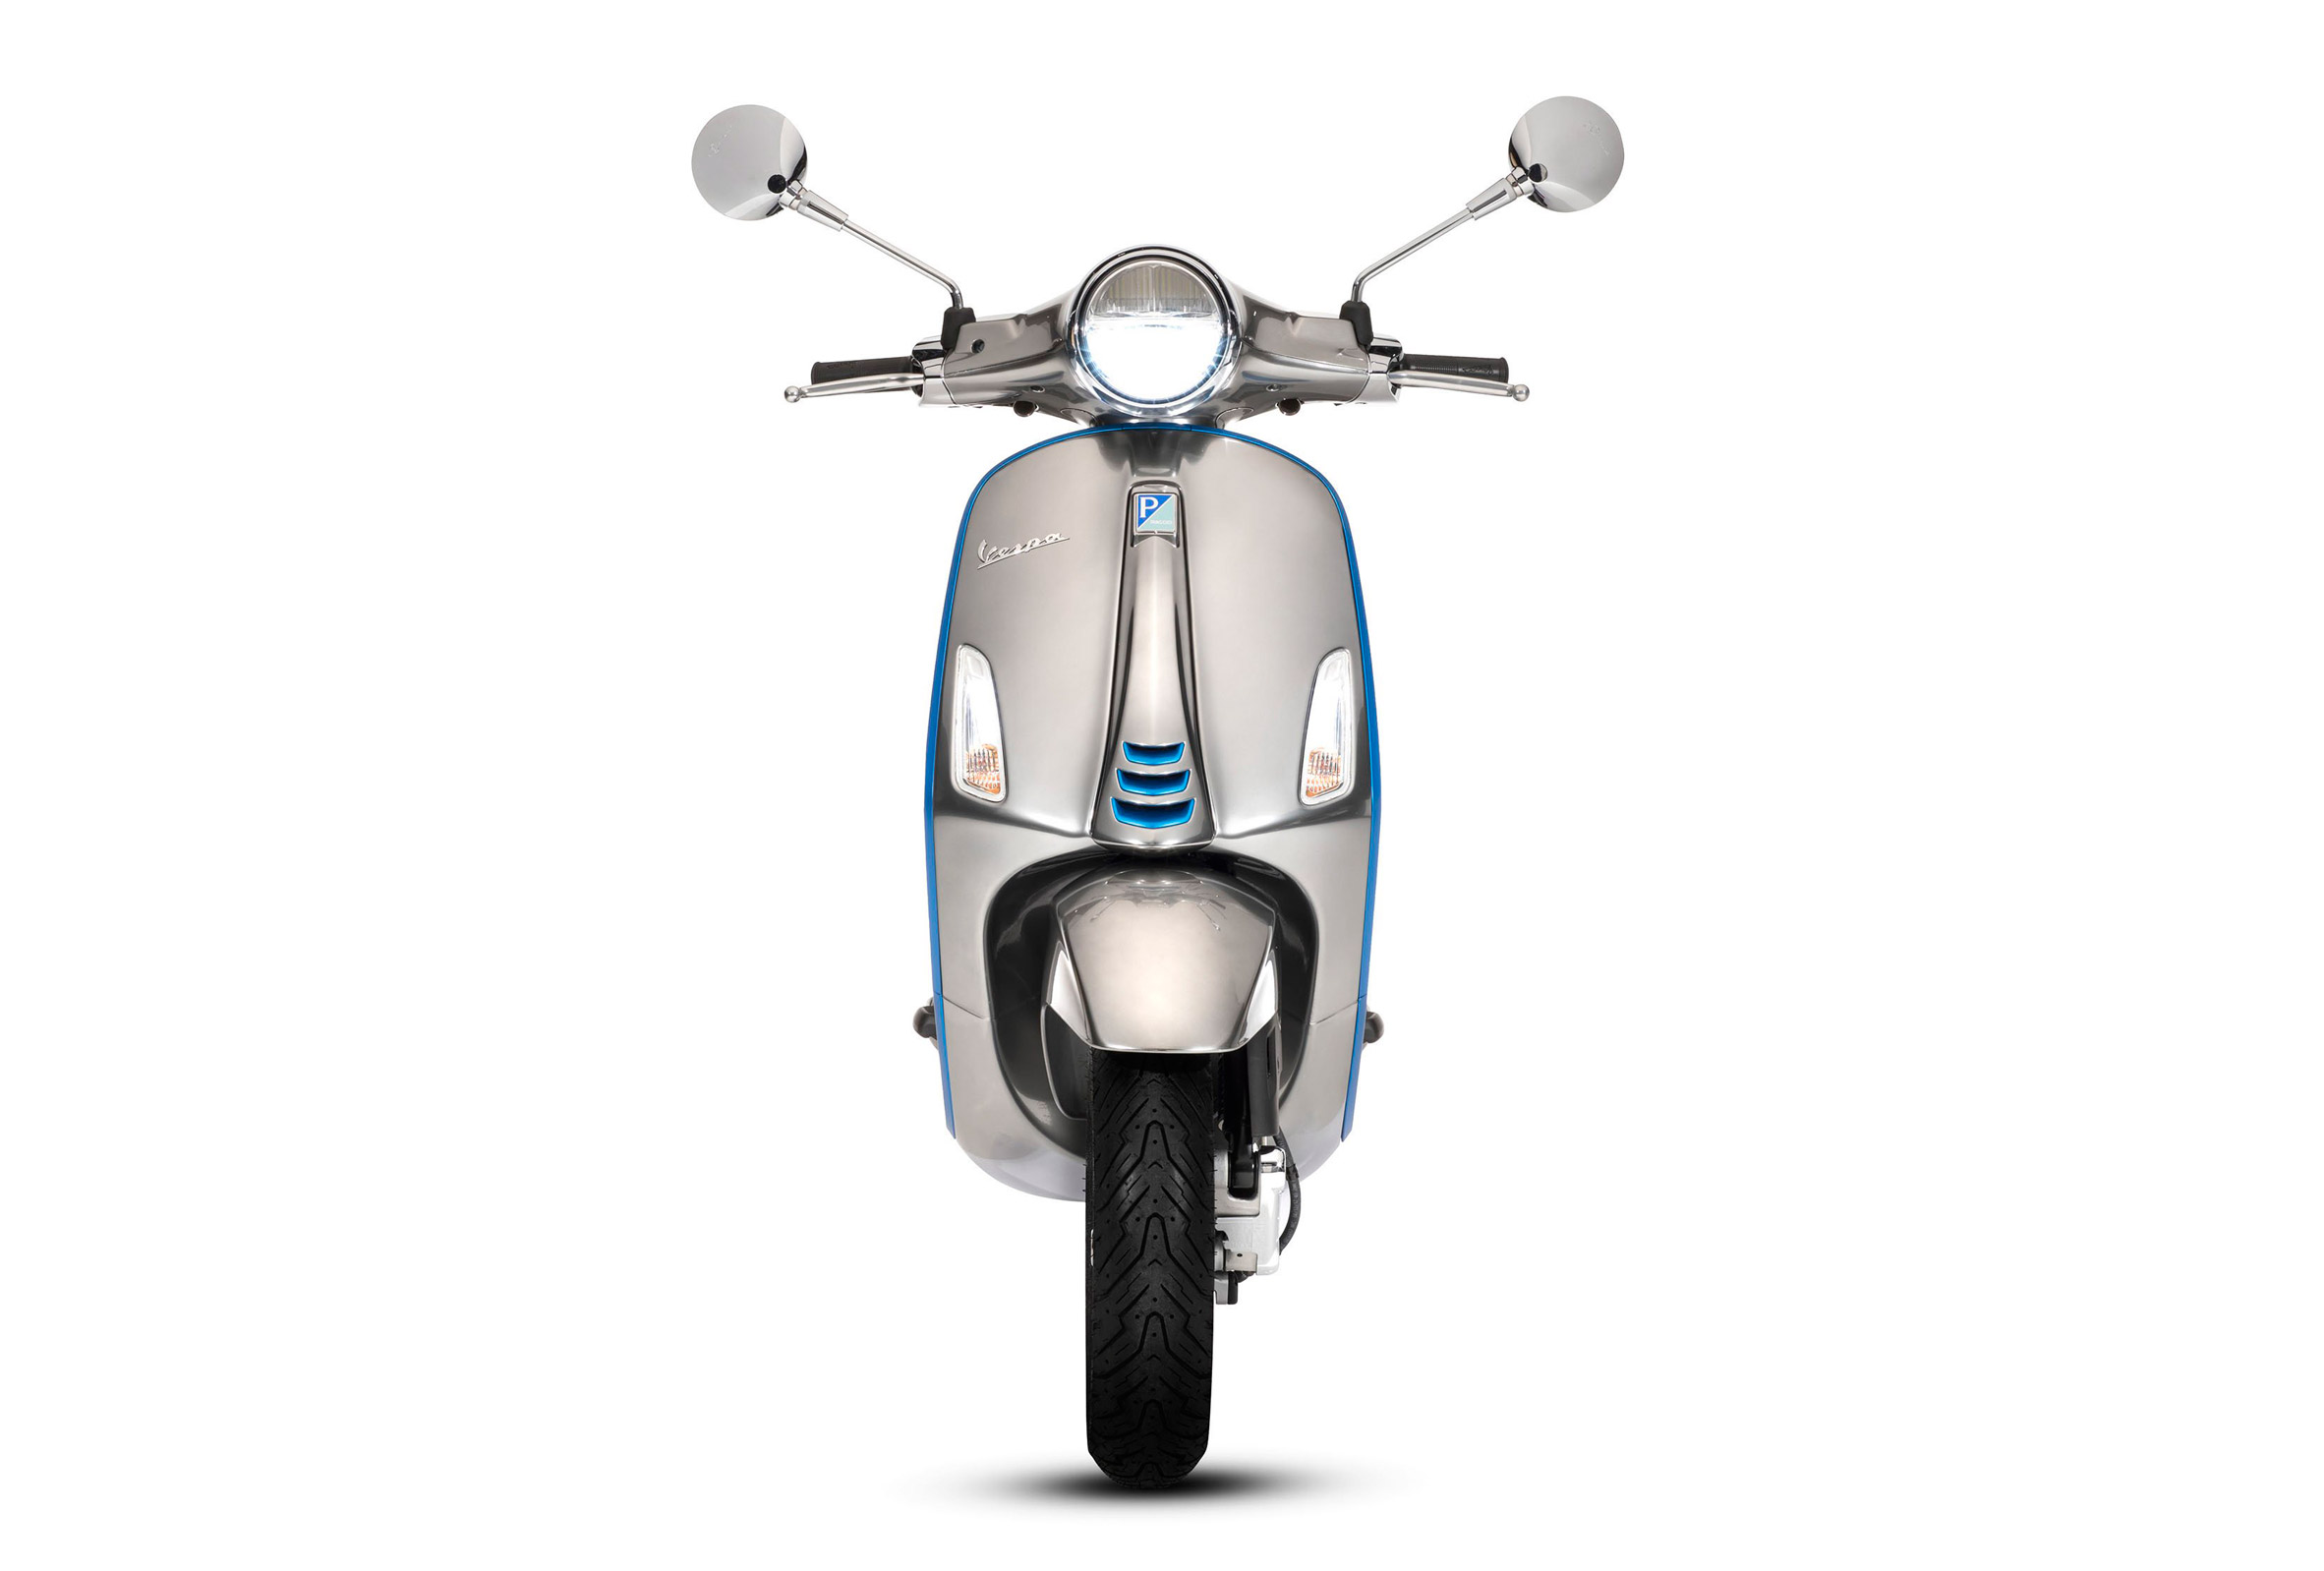 Piaggio's all-electric Vespa set to hit the roads in 2018